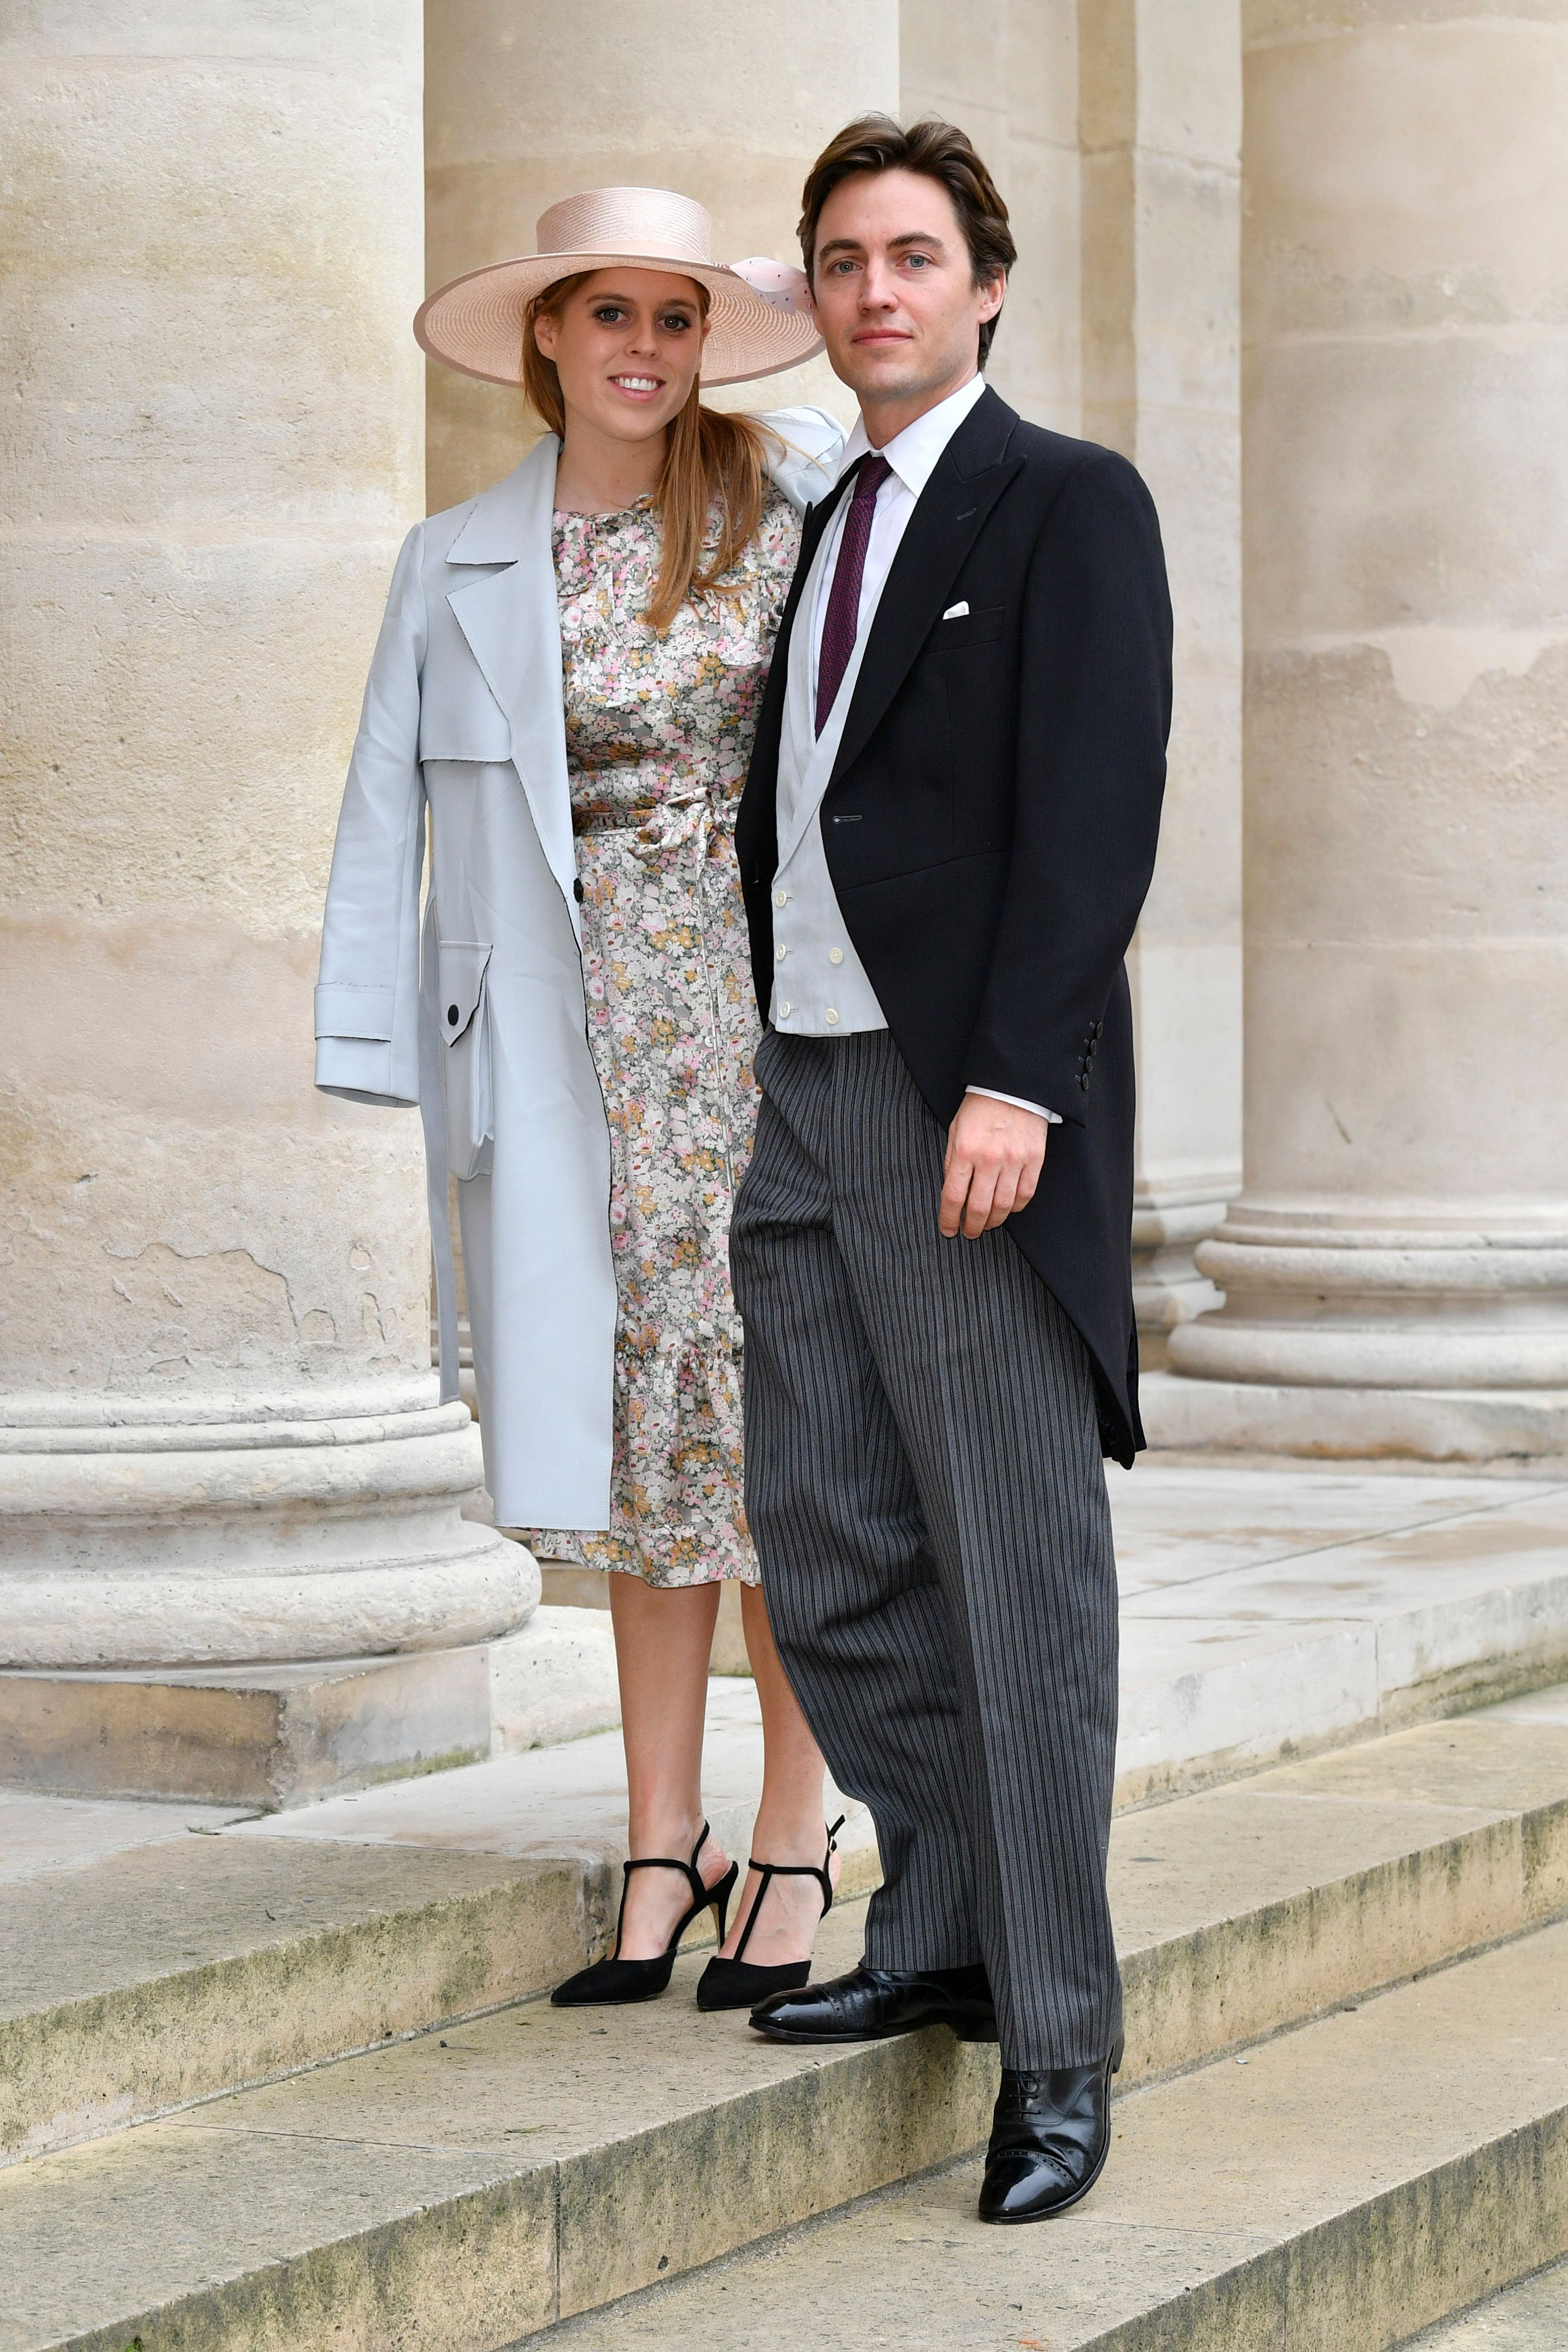 Princess Beatrice d'York and Edoardo Mapelli Mozzi at the Wedding of Prince Jean-Christophe Napoleon and Olympia Von Arco-Zinneberg at Les Invalides on October 19, 2019 in Paris, France | Photo: Getty Images